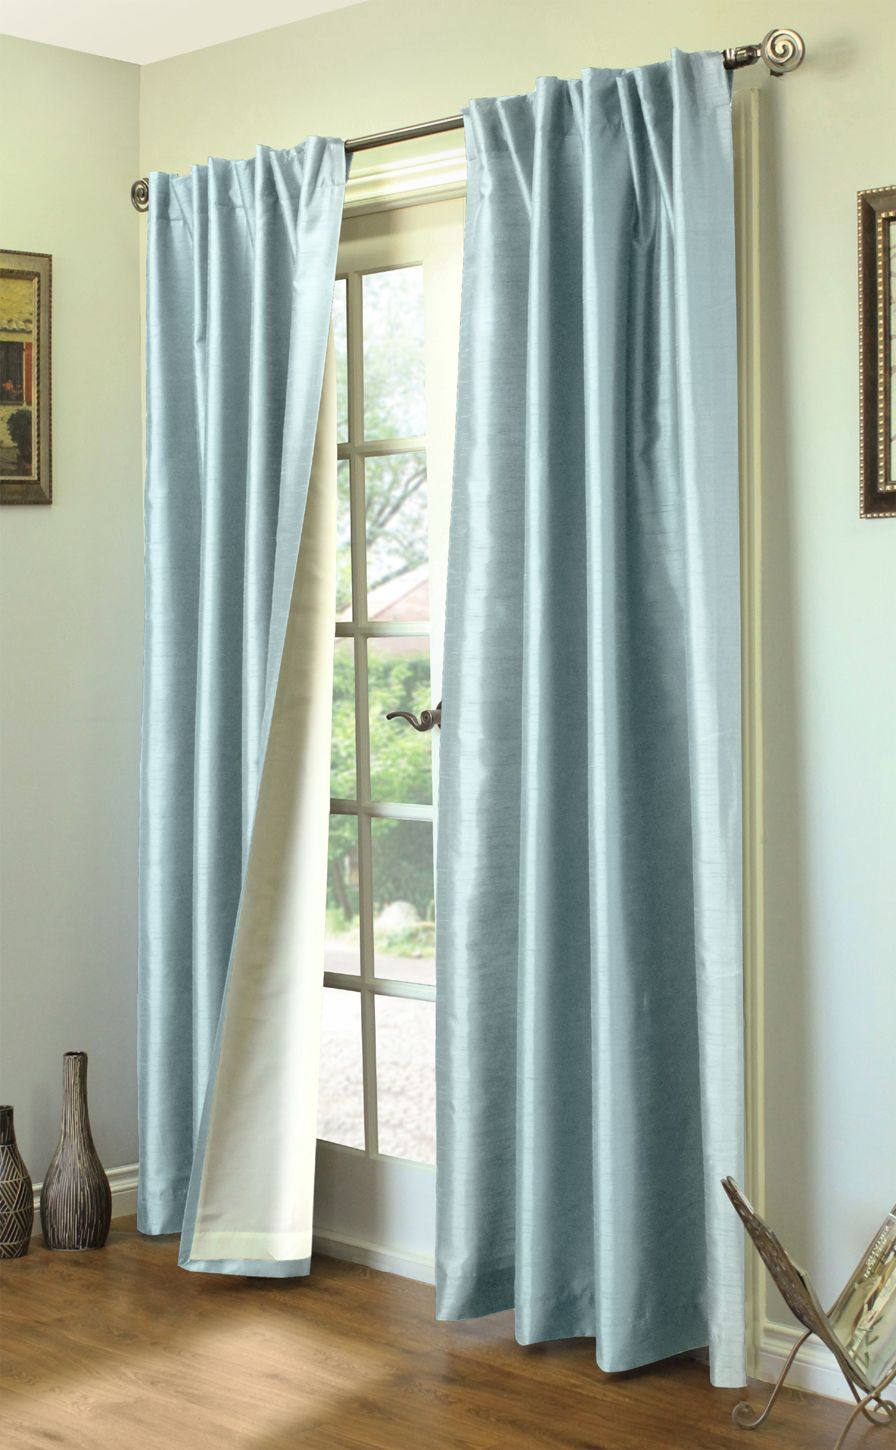 Ming Lined Thermasilk Two Ways to Hang Curtain Panels